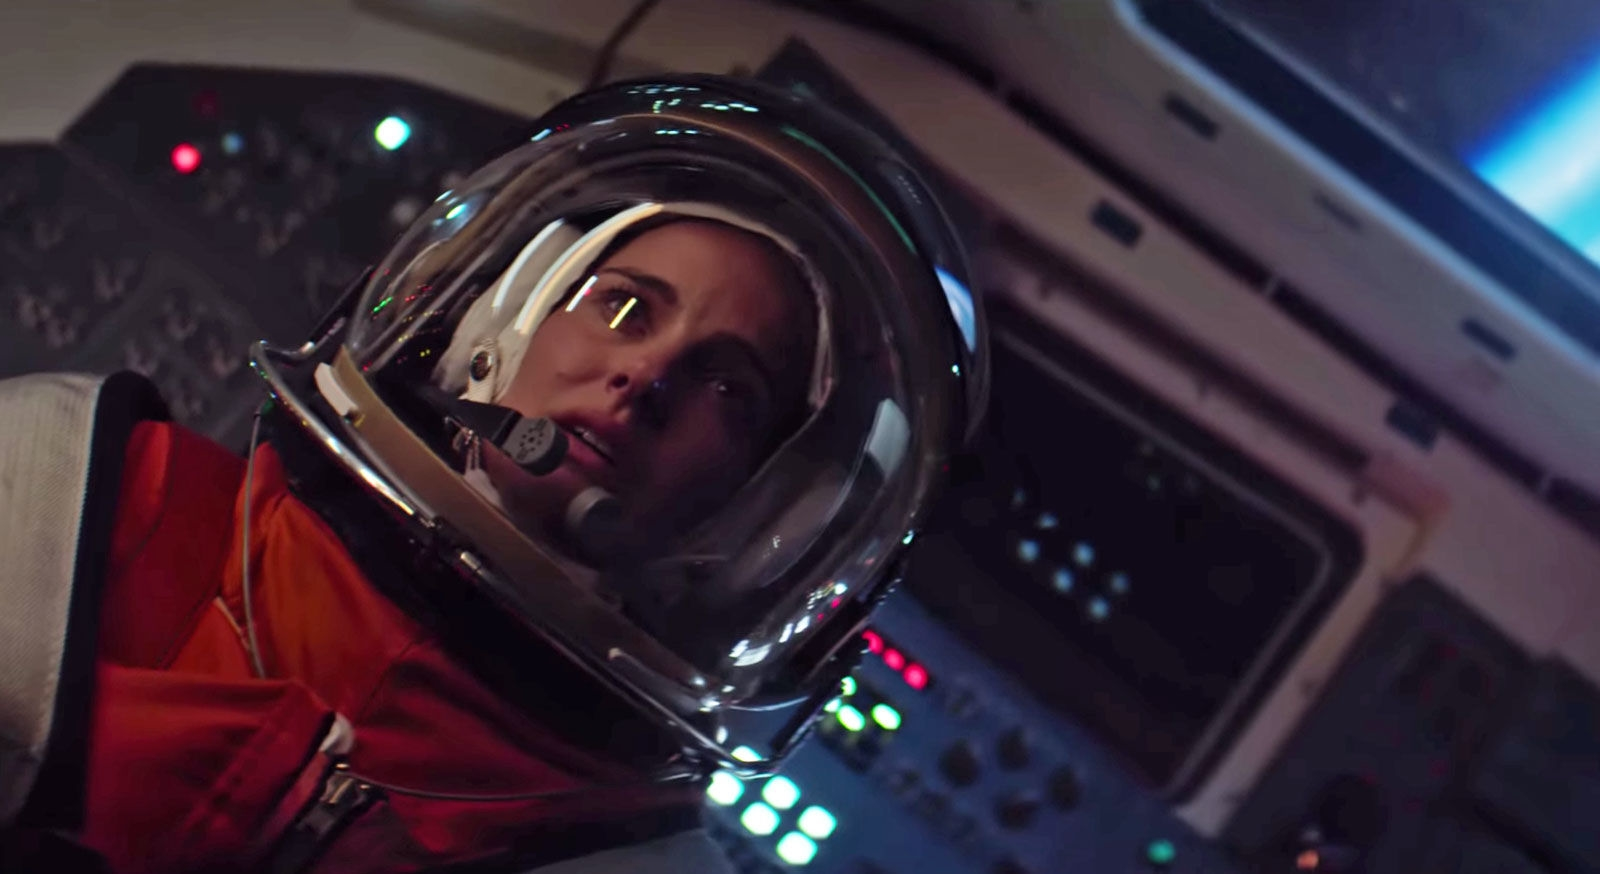 'Lucy In The Sky' trailer shows a darker side of space travel | DeviceDaily.com